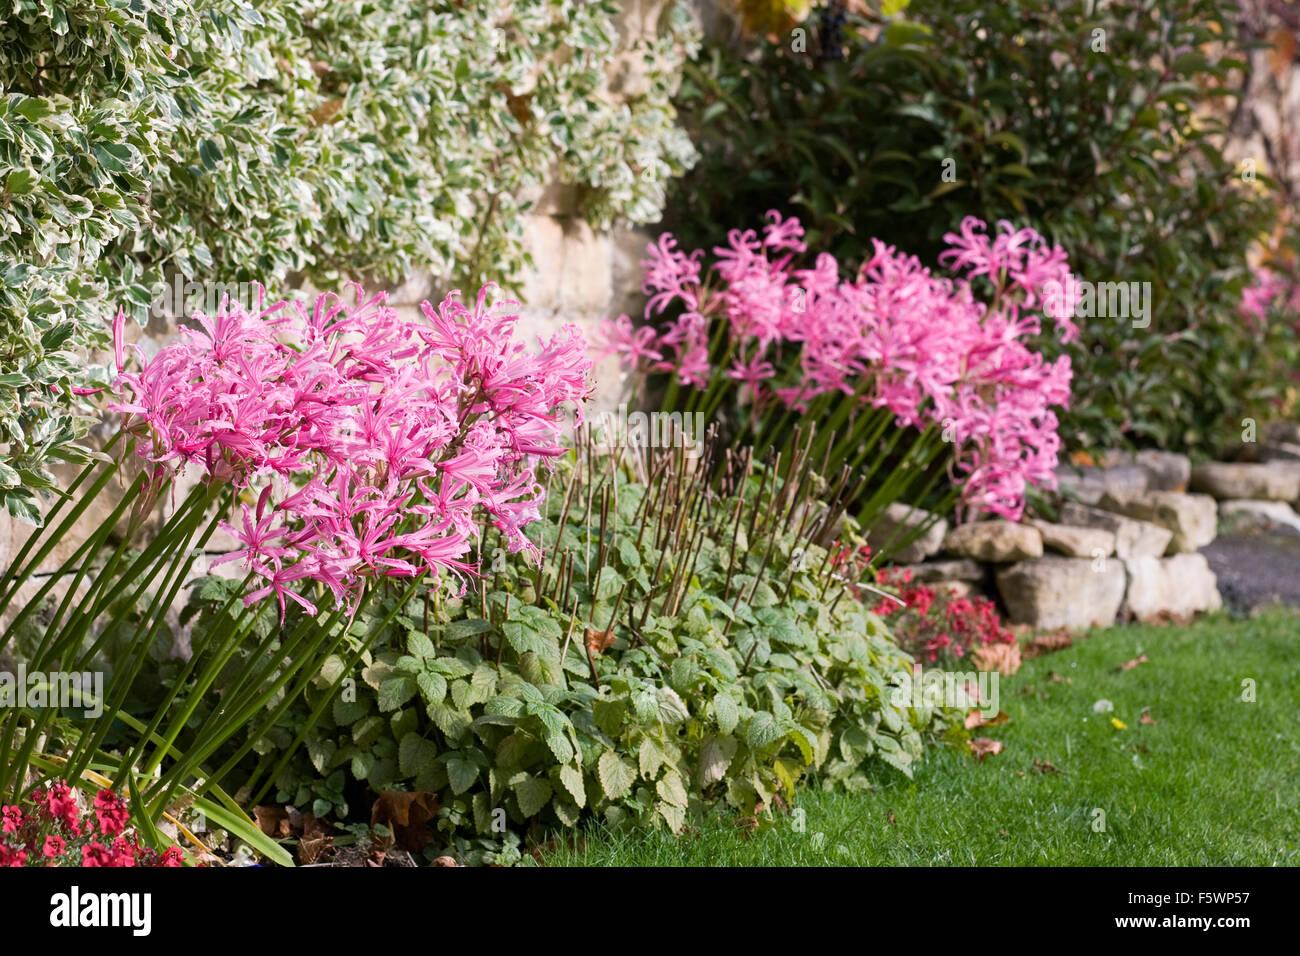 Nerine bowdenii growing at base of a wall. - Stock Image